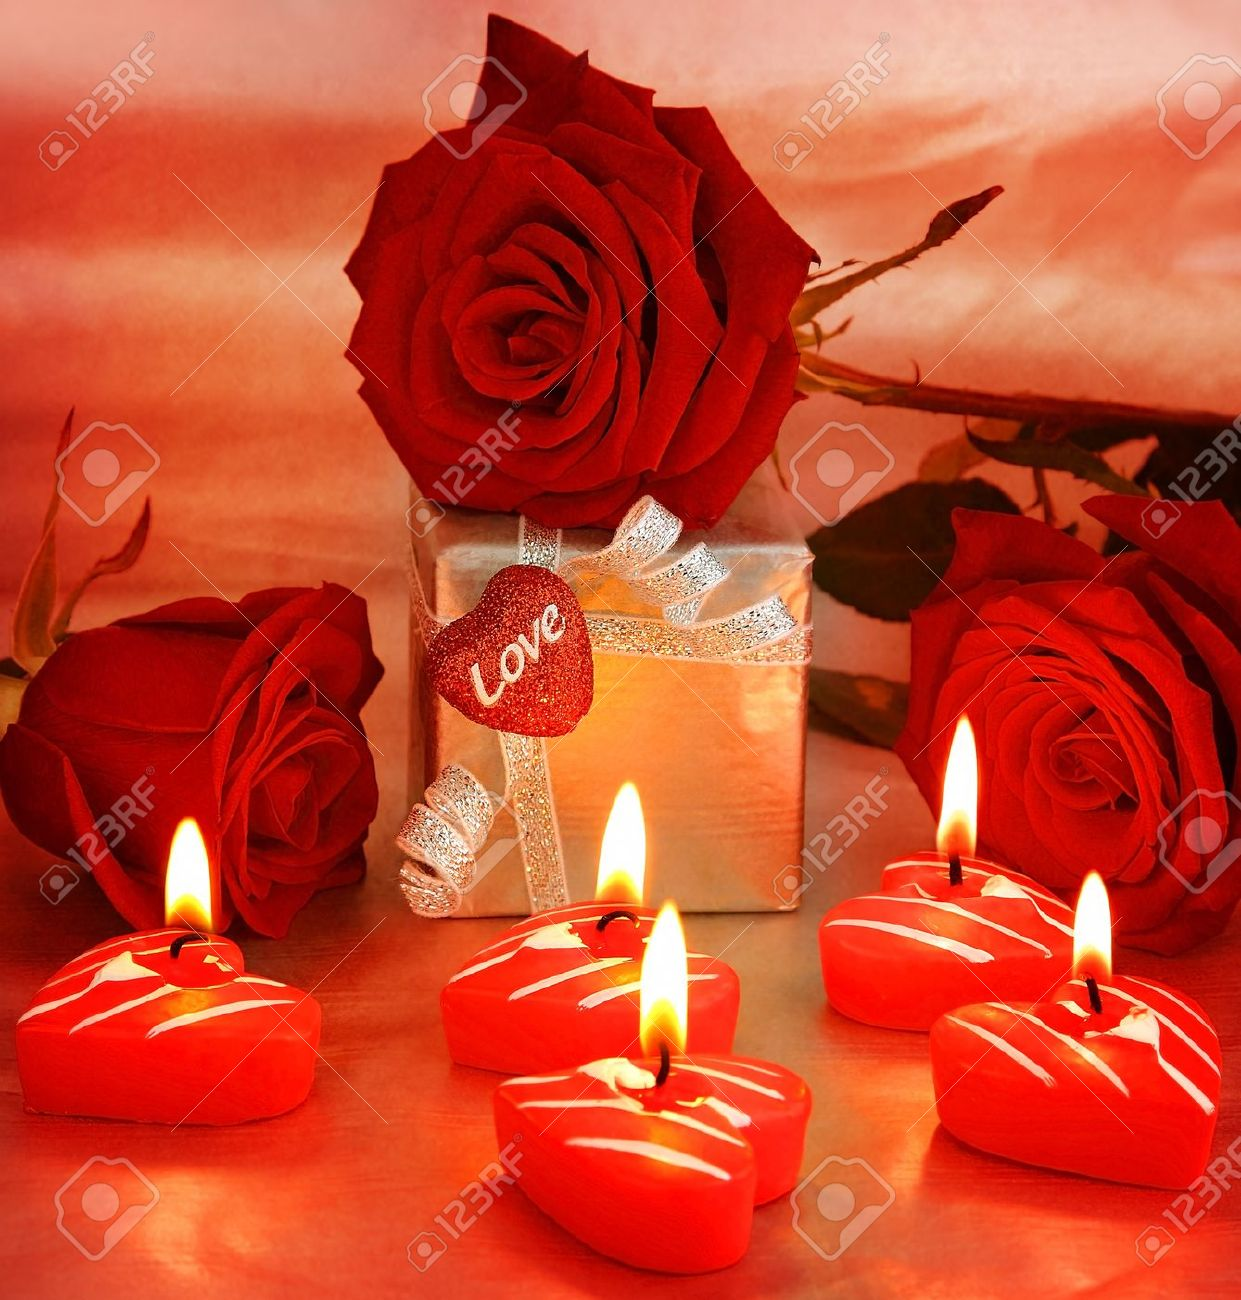 Romantic gift red roses with candles love concept stock photo romantic gift red roses with candles love concept stock photo 8749939 negle Image collections